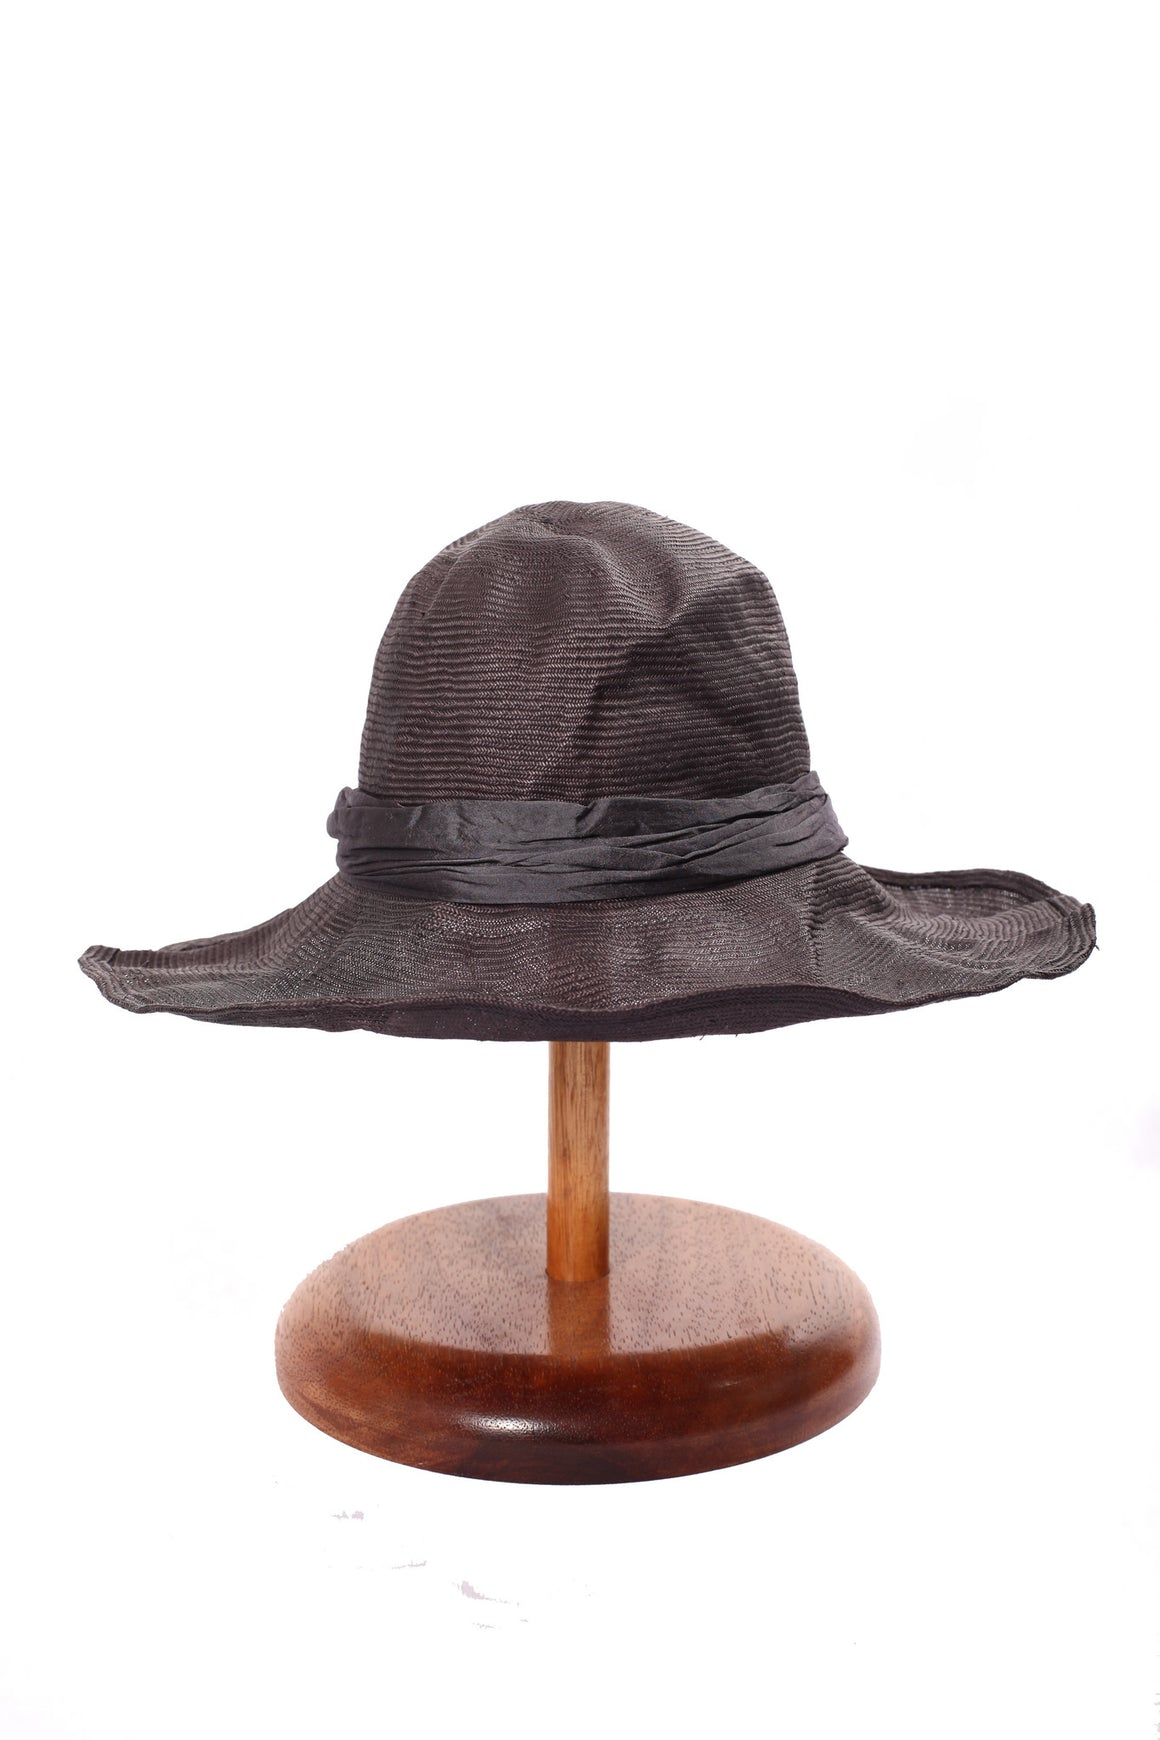 Maya Neumann Squash Hat - Dark Grey Blue